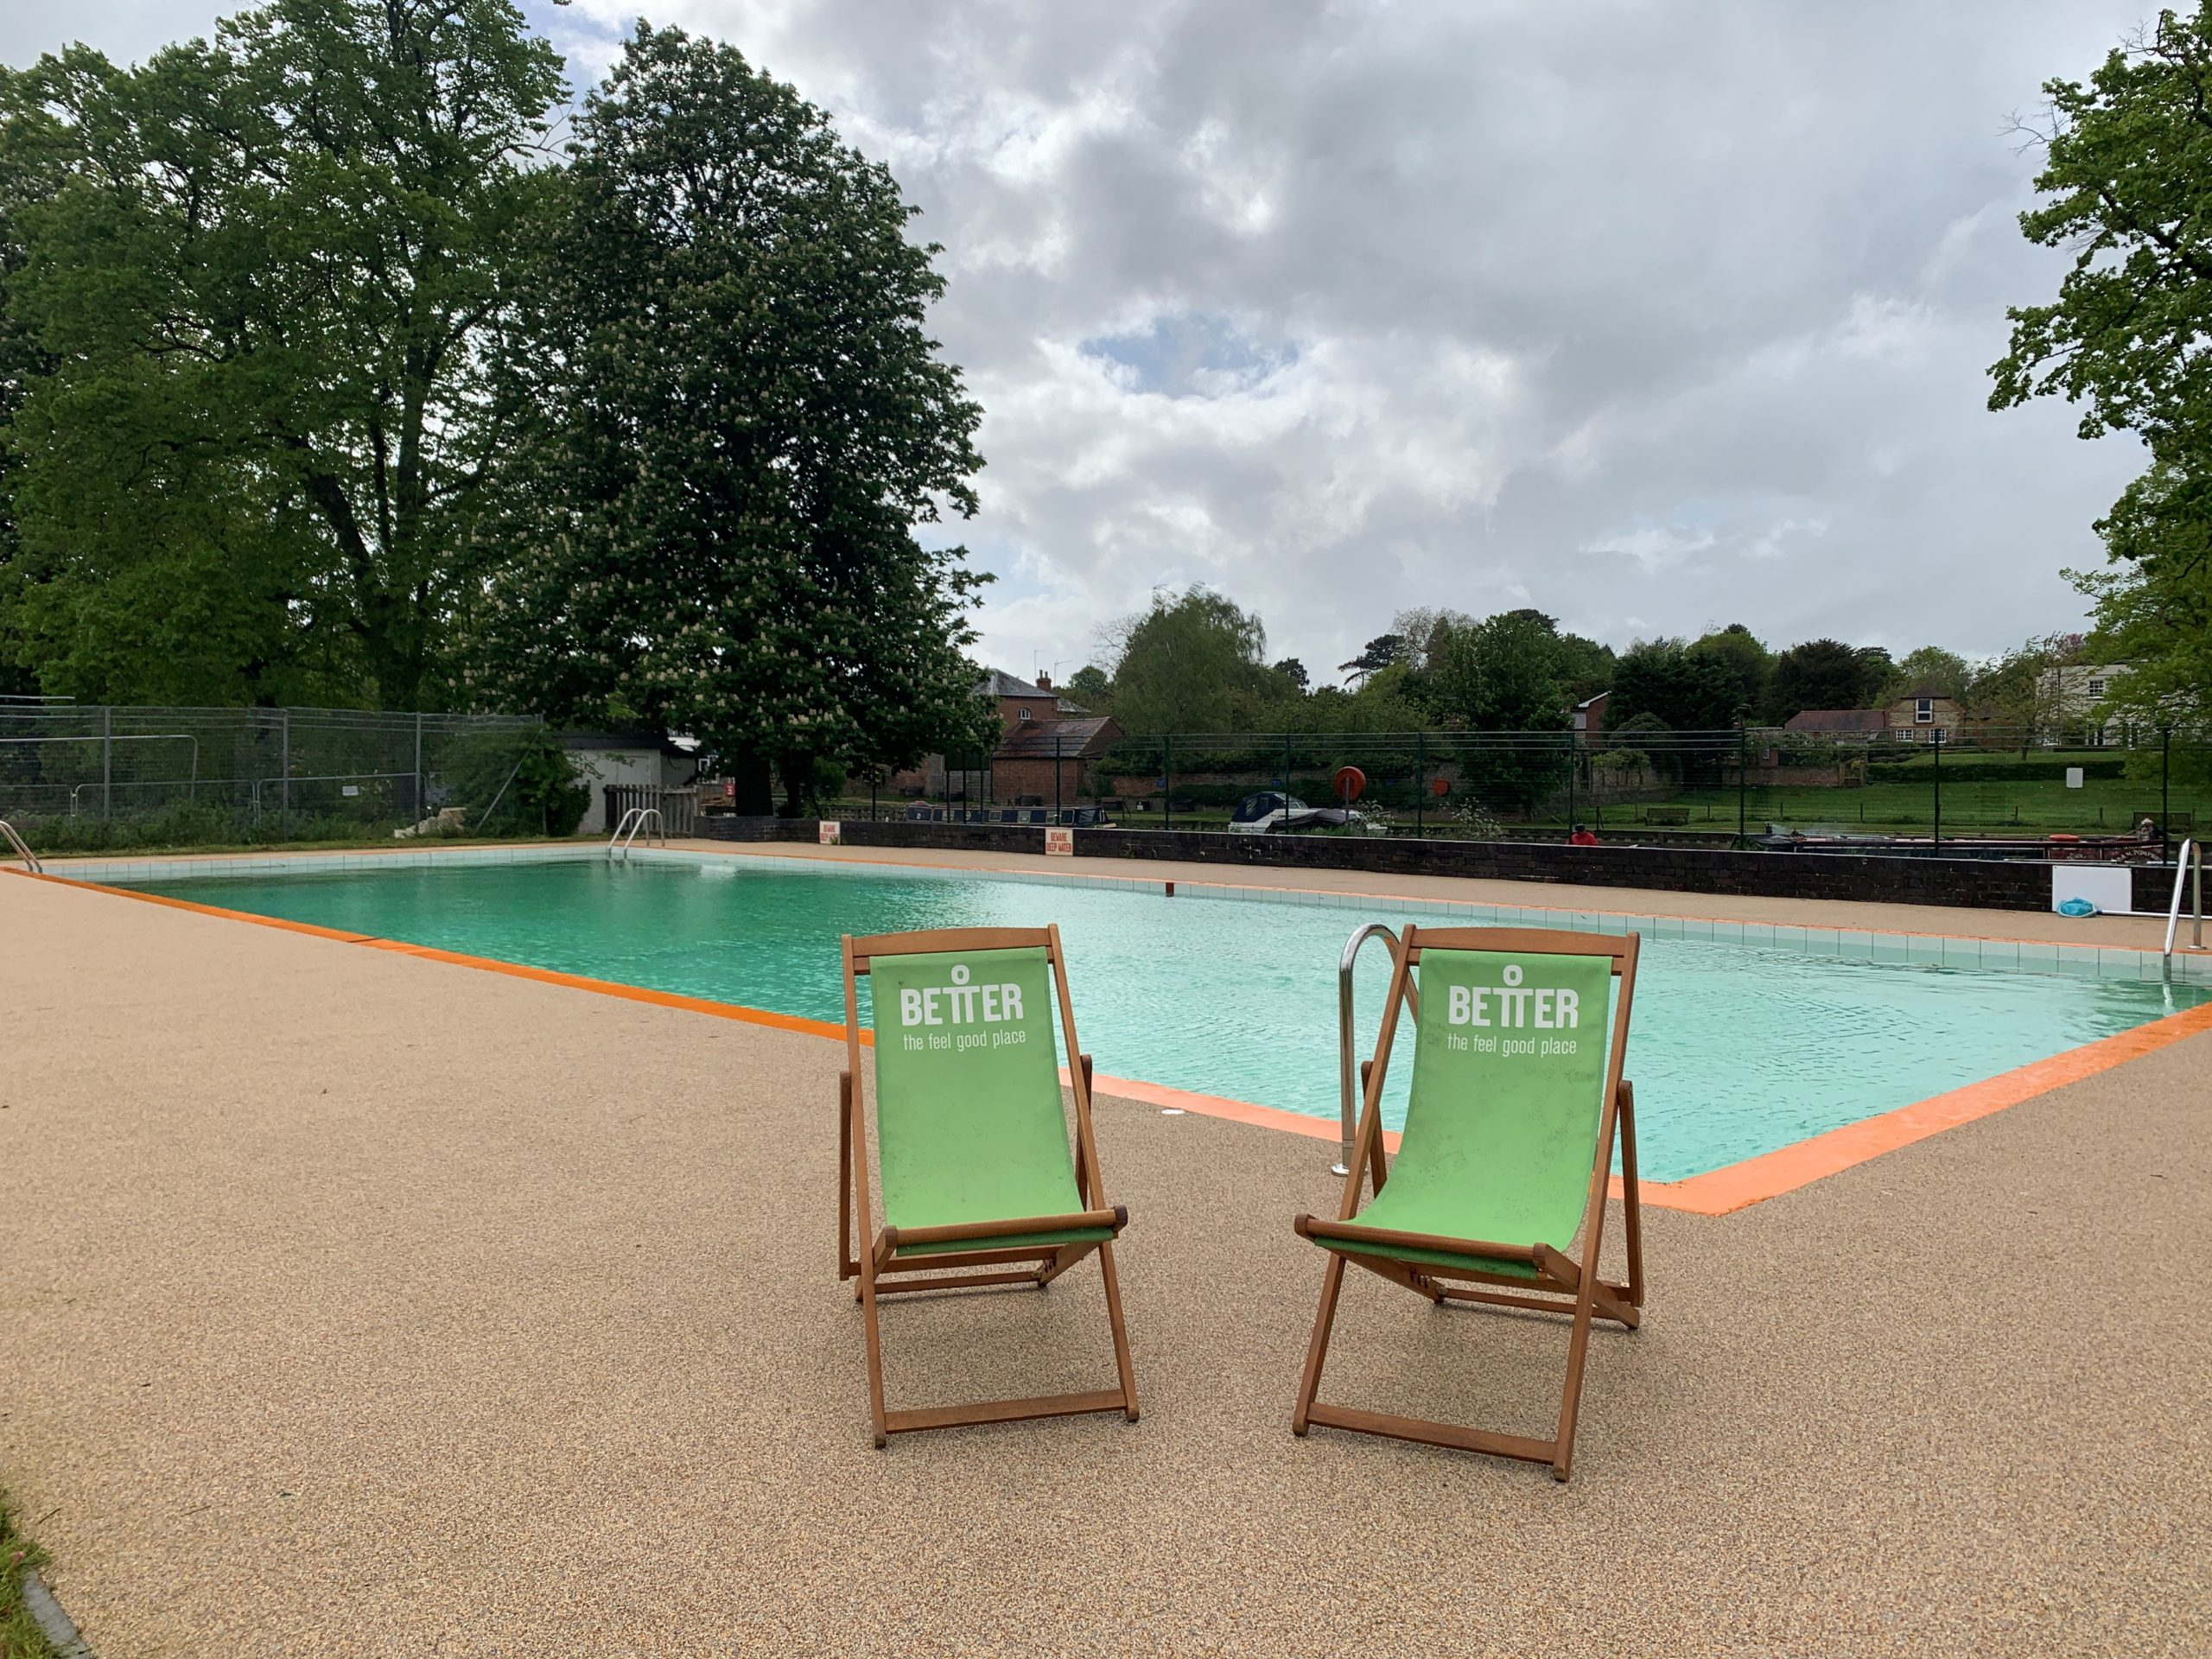 Riverside outdoor pool and campsite to reopen for the summer season